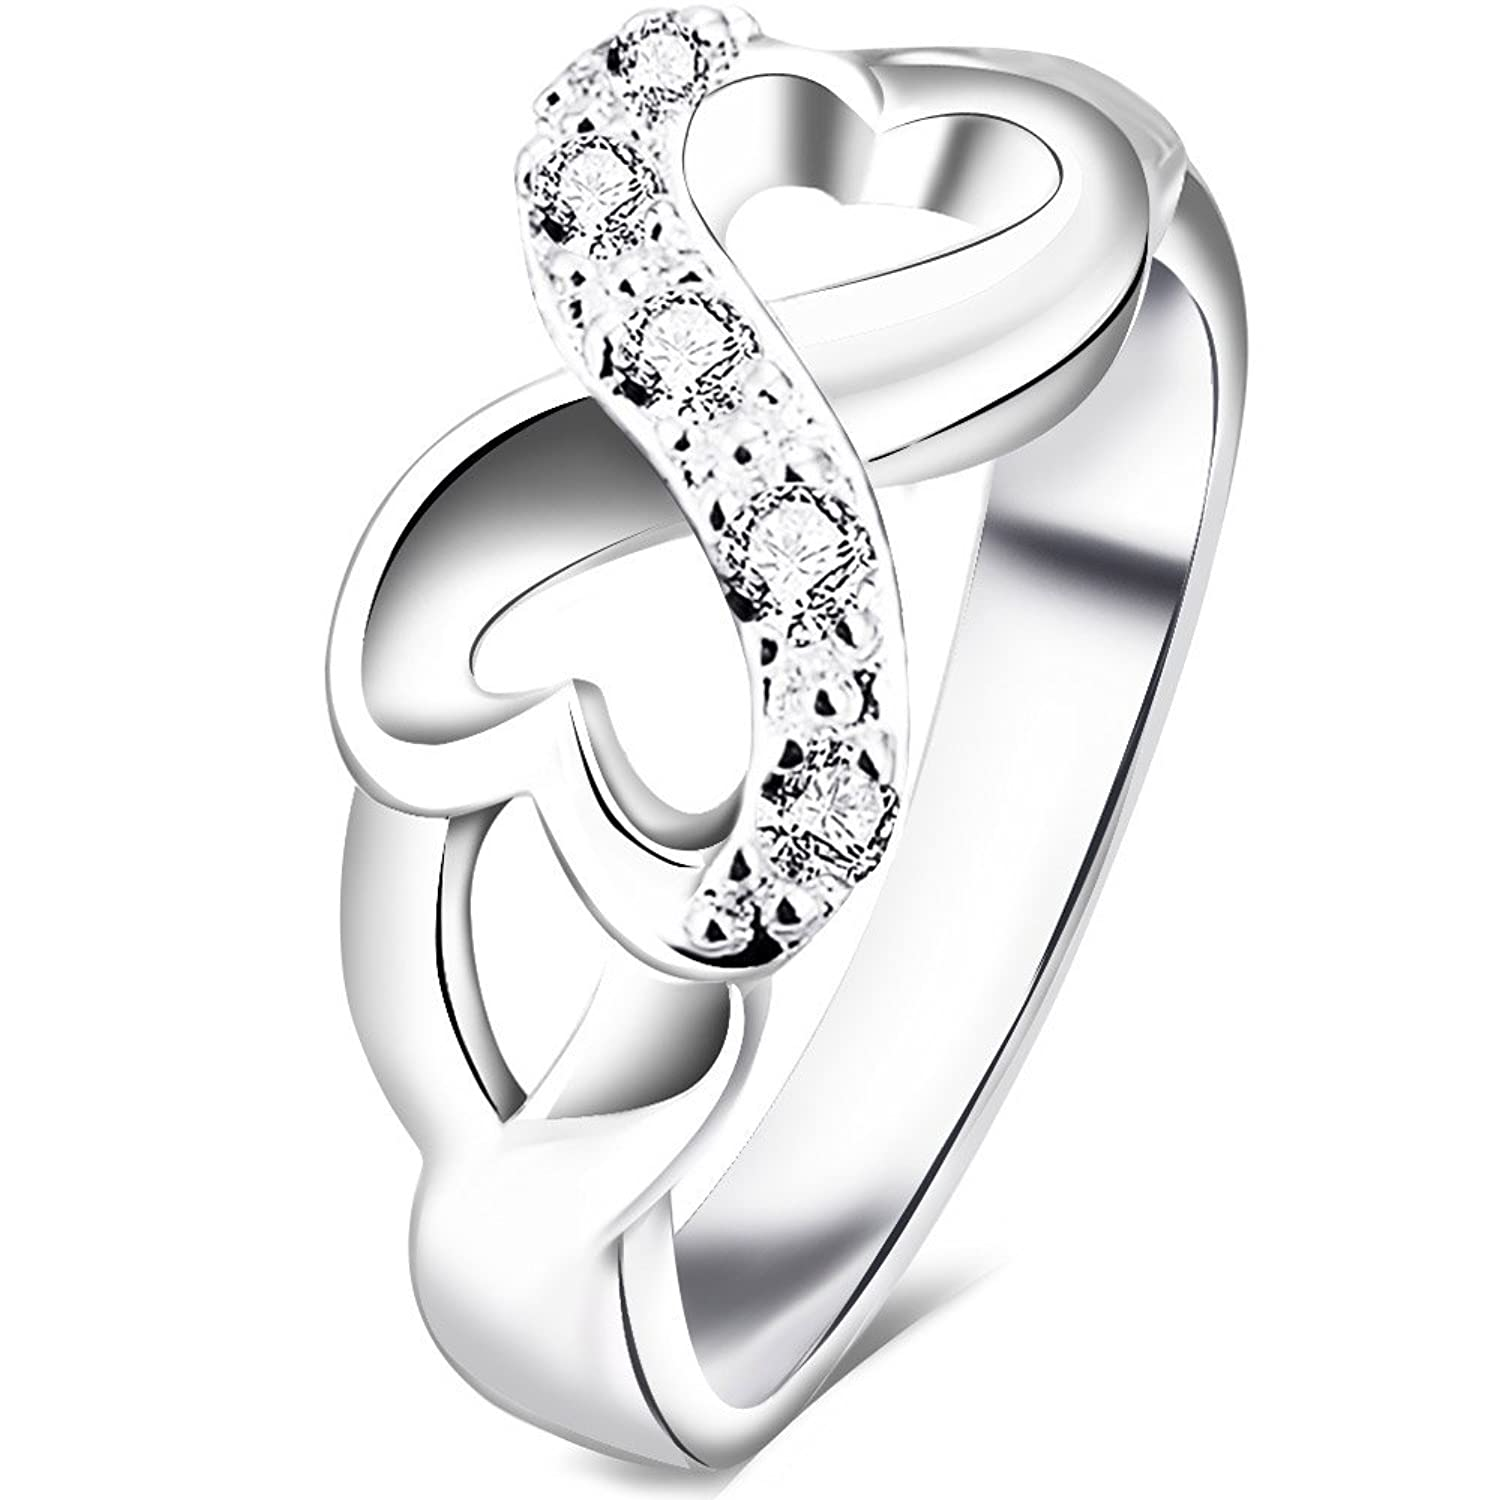 amazoncom bohg jewelry womens 925 sterling silver plated cubic zirconia cz heart infinity symbol wedding ring jewelry - Womens Wedding Ring